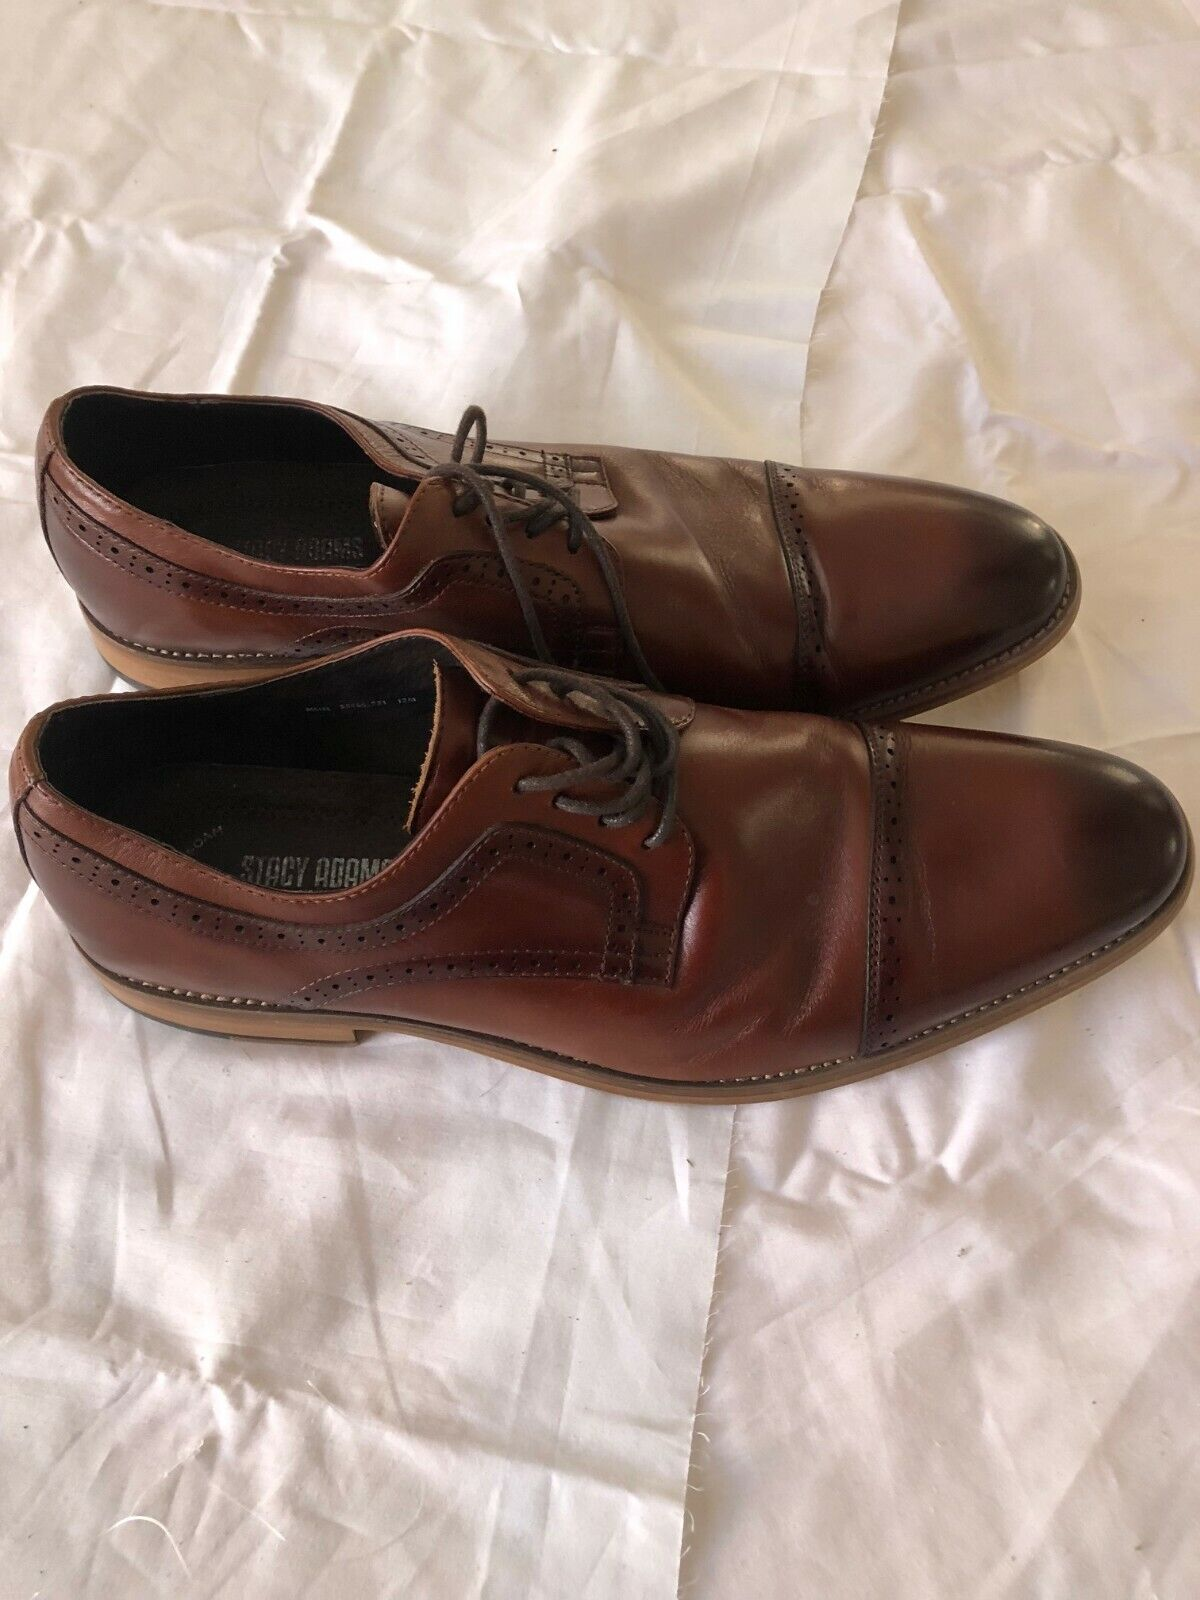 STACY ADAMS MEN'S - LACE UP - MADISON CUP TOE -  OXFORD - BROWN - SIZE 13 M